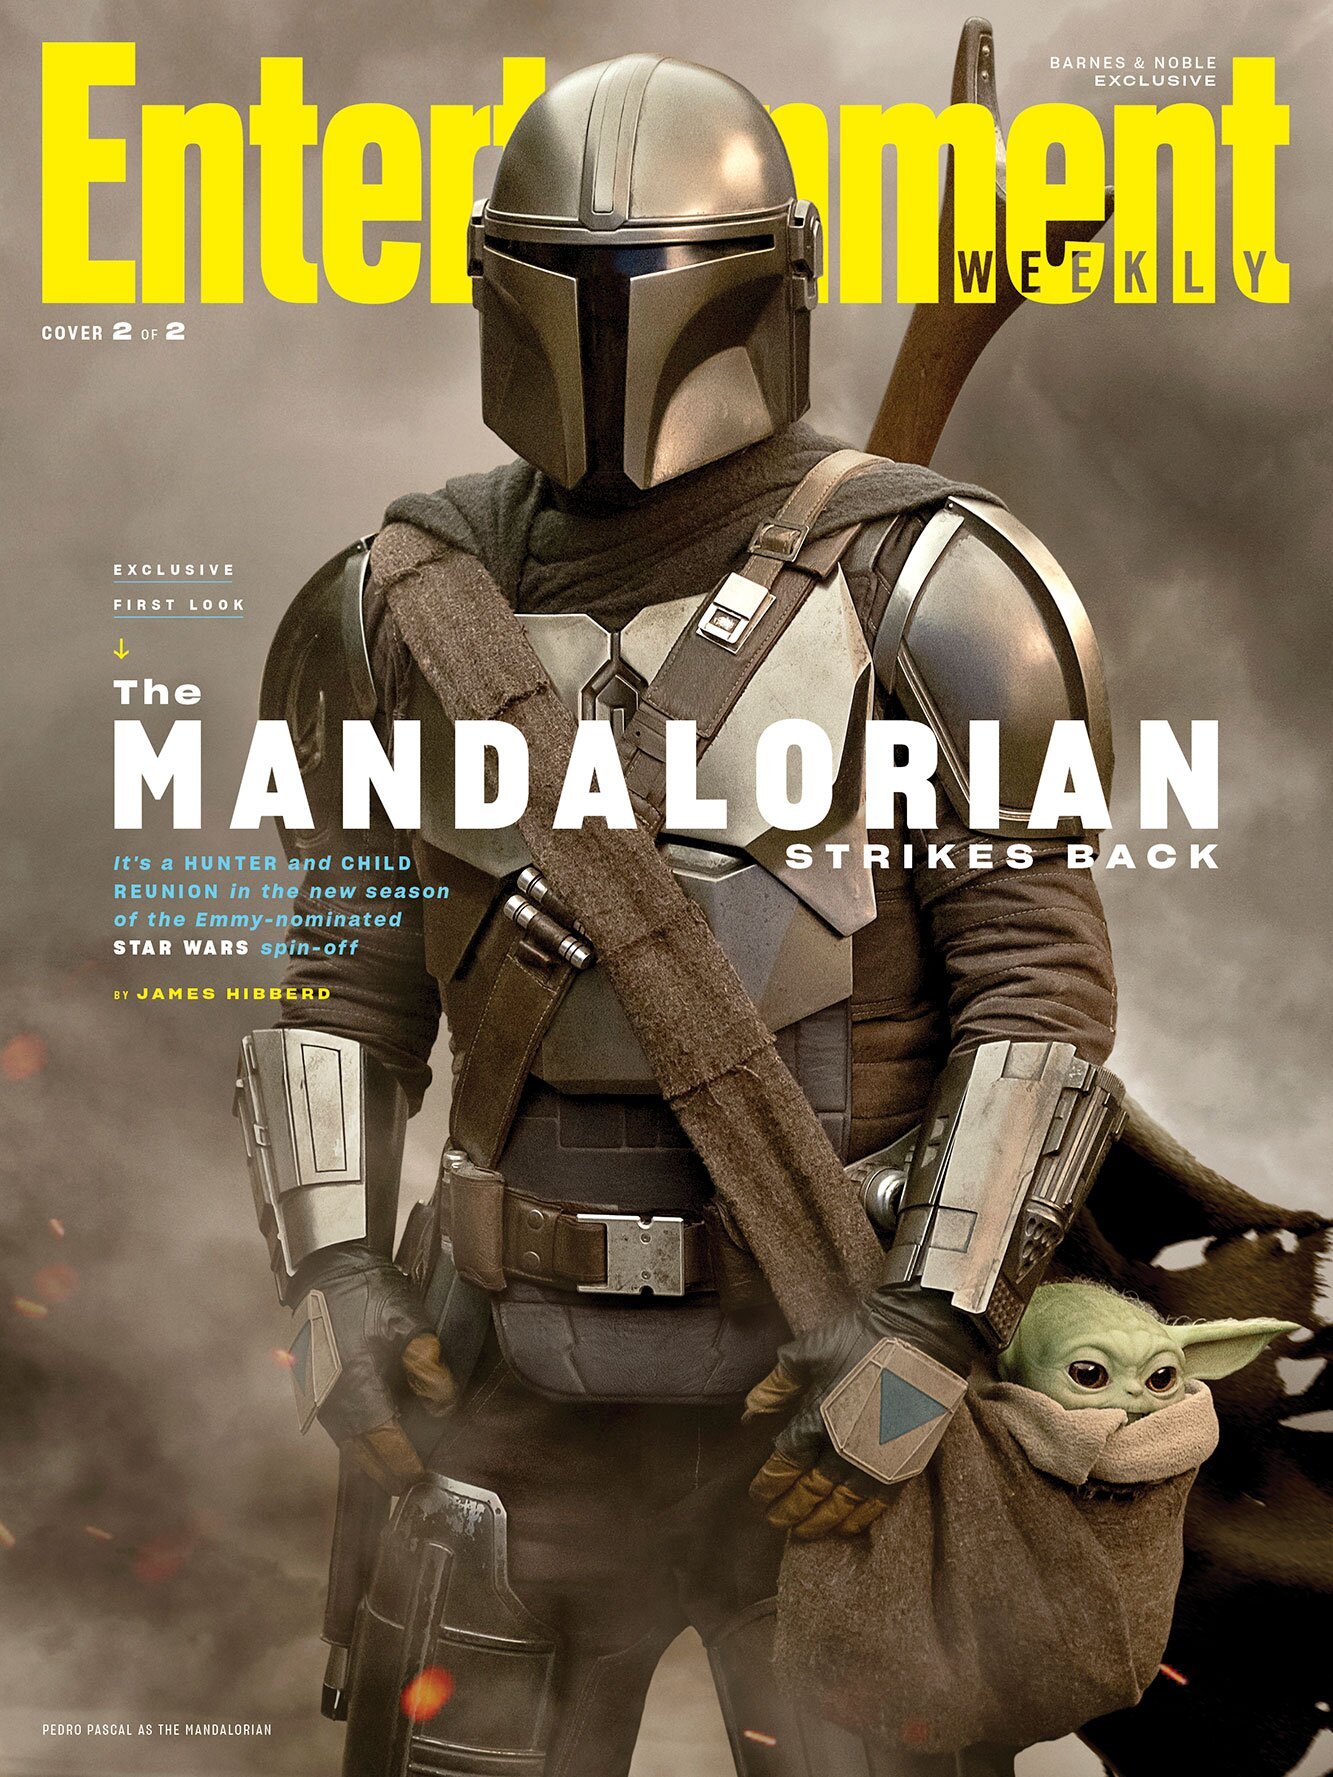 The Mandalorian Exclusive First Look At Season 2 Ew Com